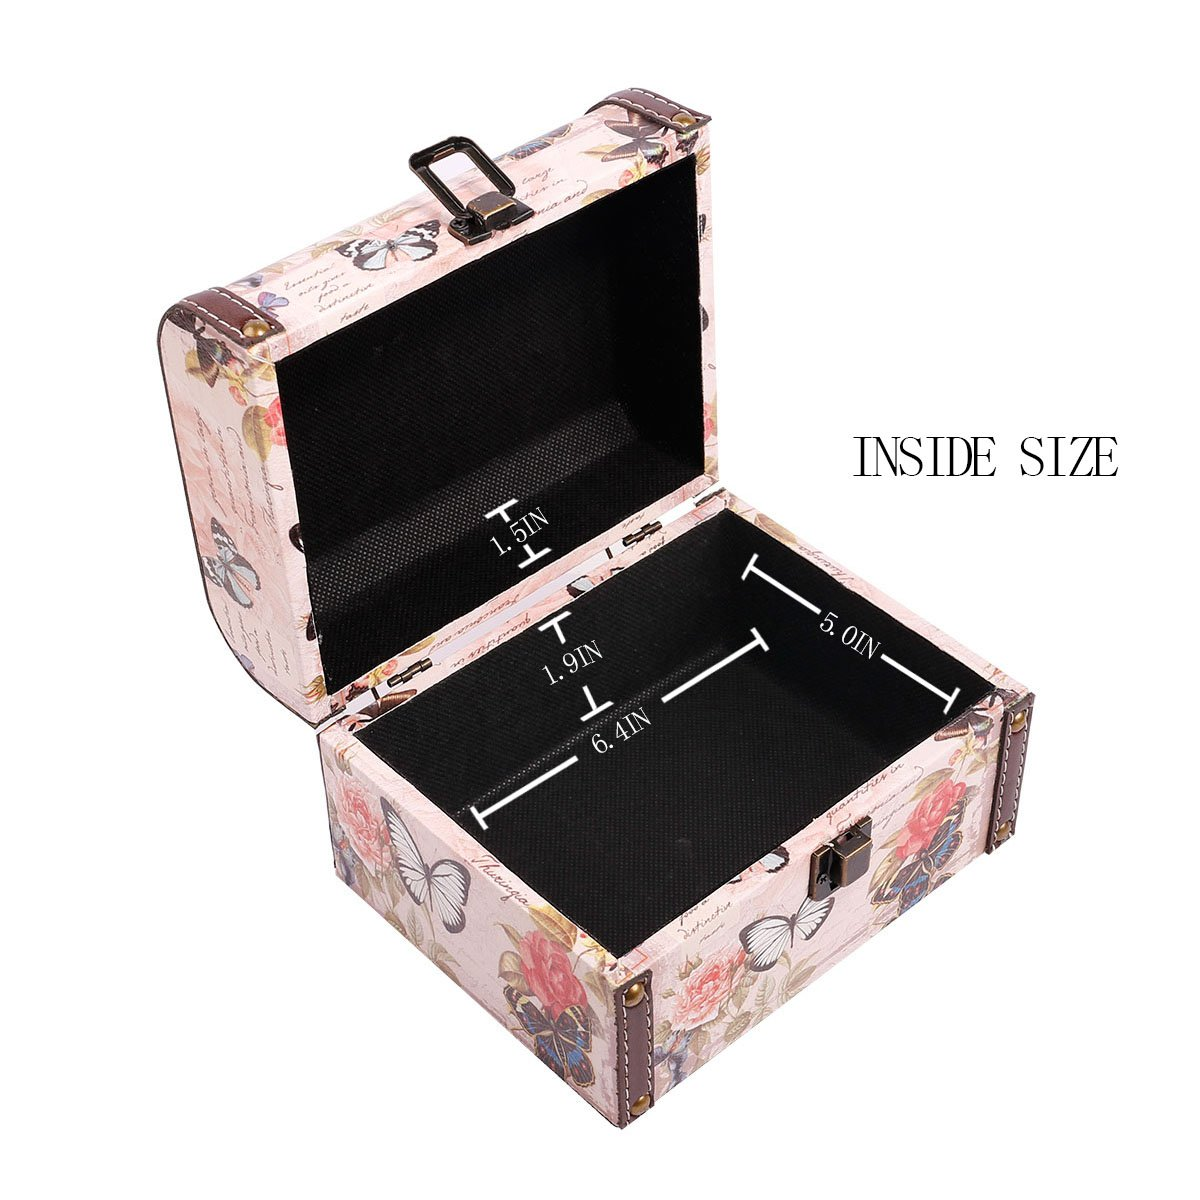 WaaHome Butterfly Wooden Treasure Boxes Decorative Jewelry Keepsakes Box for Kids Girls Women Gifts,Pink (7.1''X5.6''X4.7'') by WaaHome (Image #4)